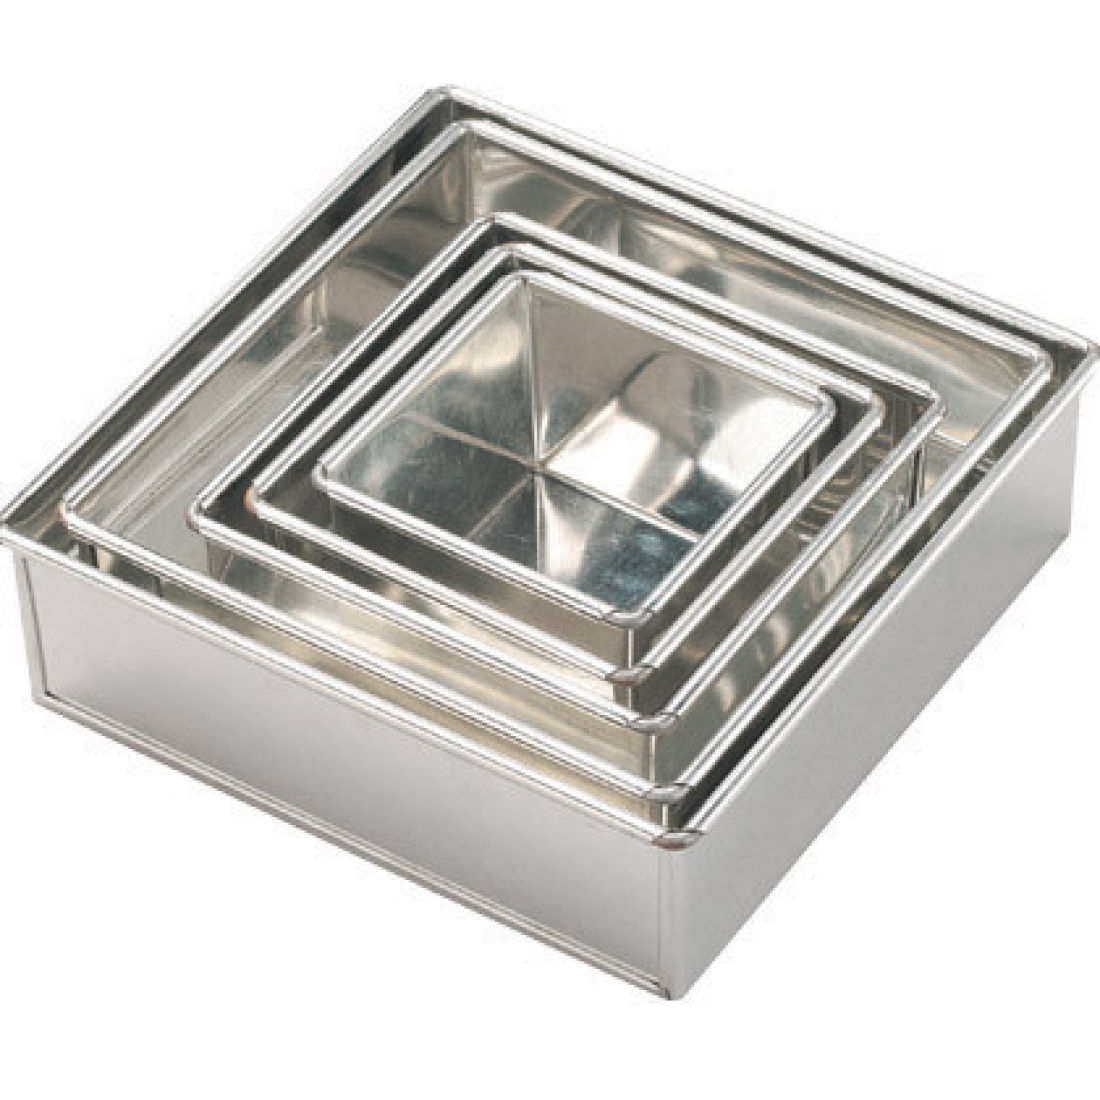 Invicta Square Cake Tins